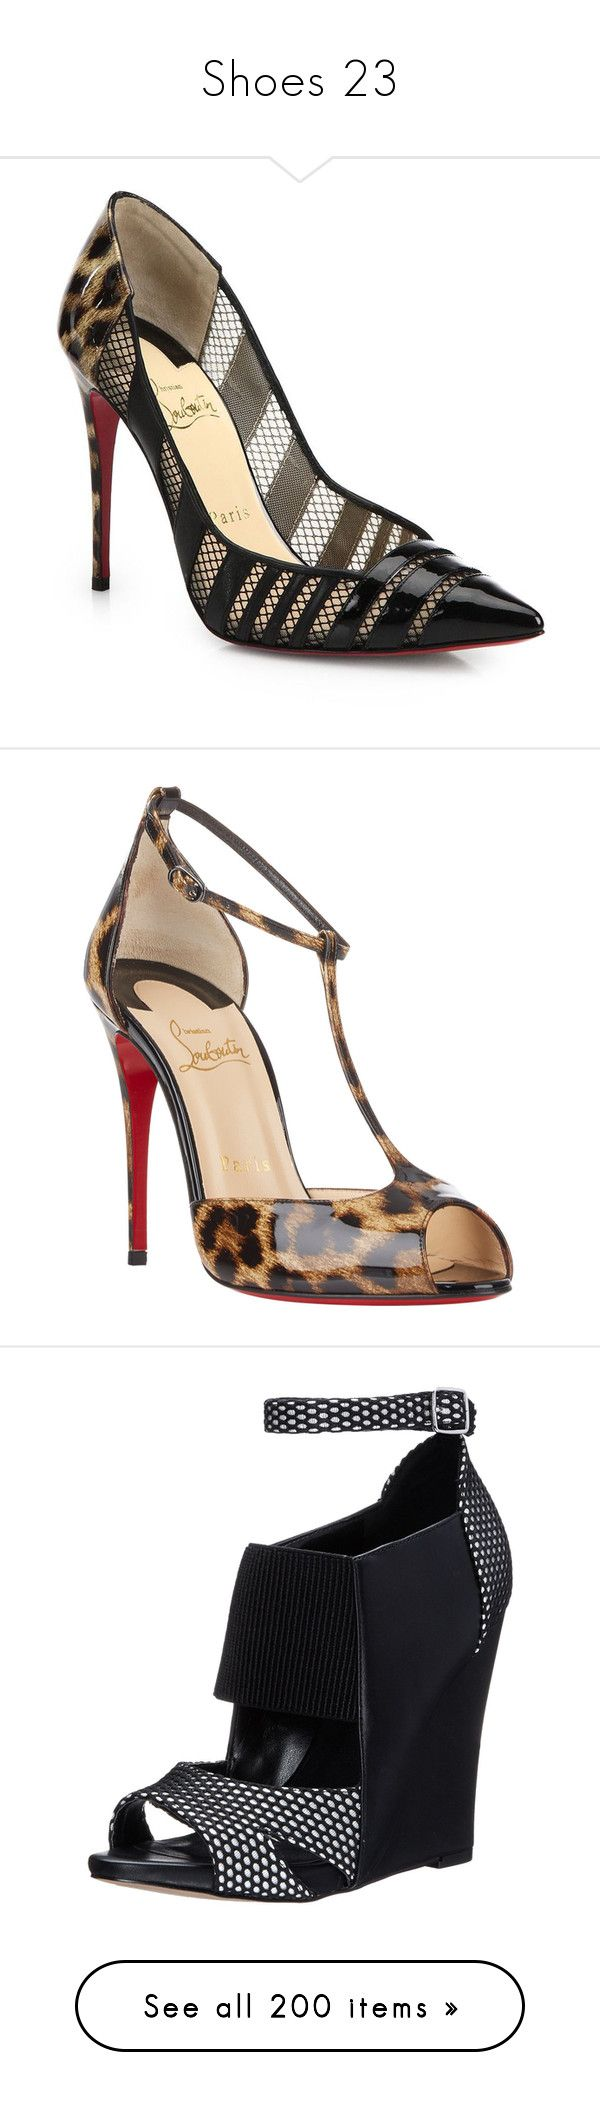 """""""Shoes 23"""" by singlemom ❤ liked on Polyvore featuring shoes, pumps, heels, christian louboutin, apparel & accessories, black shoes, black patent pumps, pointed toe pumps, christian louboutin pumps and black patent leather shoes"""